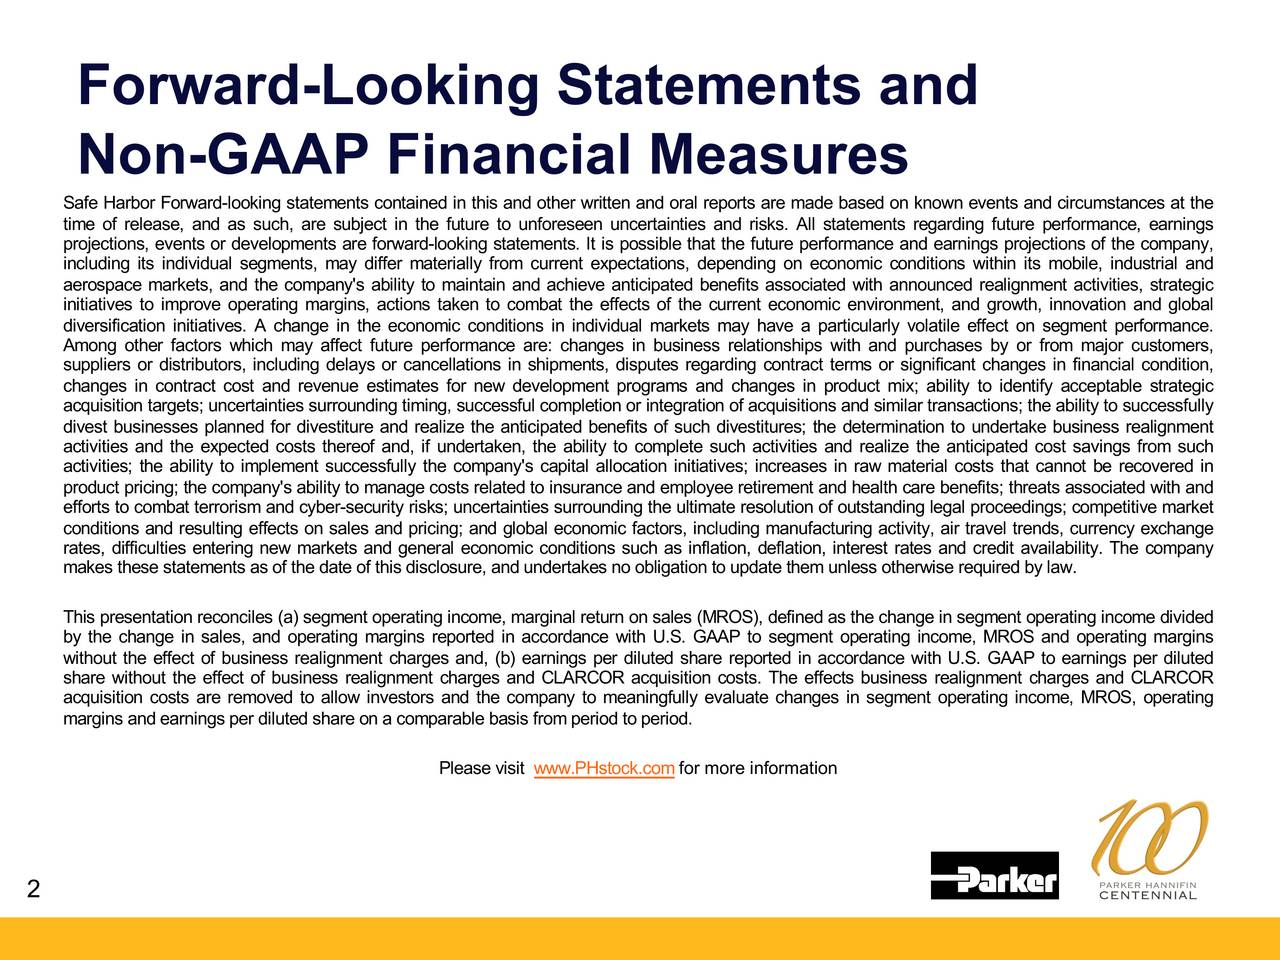 Non-GAAP Financial Measures Safe HarborForward-looking statementscontainedin this and otherwrittenand oral reportsare madebasedon known eventsand circumstancesat the time of release, and as such, are subject in the future to unforeseenuncertaintiesand risks. All statements regarding future performance,earnings projections,eventsor developmentsare forward-looking statements. It is possiblethat the future performanceand earningsprojectionsof the company, including its individual segments, may differ materiallyfrom current expectations,dependingon economic conditions within its mobile,industrial and aerospacemarkets,and the company'sabilityto maintainand achieveanticipatedbenefitsassociatedwith announcedrealignment activities,strategic initiatives to improve operatingmargins,actions taken to combat the effects of the current economicenvironment,and growth, innovation and global diversificationinitiatives. A change in the economic conditions in individual marketsmay have a particularlyvolatile effect on segment performance. Among other factors which may affect future performanceare: changes in business relationships with and purchases by or from major customers, suppliersor distributors,including delays or cancellationsin shipments,disputesregarding contract terms or significantchanges in financial condition, changes in contract cost and revenue estimates for new developmentprograms and changes in product mix; ability to identify acceptablestrategic acquisitiontargets; uncertaintiessurroundingtiming,successfulcompletionor integrationof acquisitionsandsimilartransactions; the abilityto successfully divest businessesplannedfor divestitureand realize the anticipatedbenefitsof su; the determinationto undertakebusinessrealignment activitiesand the expectedcosts thereof and, if undertaken,the ability to complete such activitiesand realize the anticipatedcost savings from such activities; the ability to implement successfullythe company's capital allocationinitiatives; increases in raw materialcosts that cannot be recovered in productpricing; the company'sabilityto managecostsrelatedto insuranceandemployeeretirementandhealthcarebenefits; threatsassociatedwithand effortsto combatterrorismand cyber-securityrisks; uncertaintiessurroundingthe ultimateresolutionof outstandinglegal proceedings; competitivemarket conditionsand resultingeffectson sales and pricing; and globaleconomicfactors, including manufacturingactivity,air travel trends, currencyexchange makesthesestatementsas of the dateof thisdisclosure,andundertakesno obligationto updatethemunlessotherwiserequiredby law.anyailability Thispresentationreconciles(a) segmentoperatingincome, marginalreturnon sales(MROS),definedas the changein segmentoperatingincome divided by the change in sales, and operatingmarginsreported in accordancewith U.S. GAAP to segment operatingincome, MROS and operatingmargins withoutthe effect of businessrealignmentcharges and, (b) earningsper dilutedshare reported in accordancewith U.S. GAAP to earningsper diluted share without the effect of businessrealignment charges and CLARCORacquisitioncosts. The effects businessrealignment charges and CLARCOR acquisitioncosts are removed to allow investors and the company to meaningfullyevaluatechanges in segment operatingincome, MROS, operating marginsandearningsperdilutedshareon a comparablebasisfromperiodto period. Pleasevisit www.PHstock.comfor more information 2